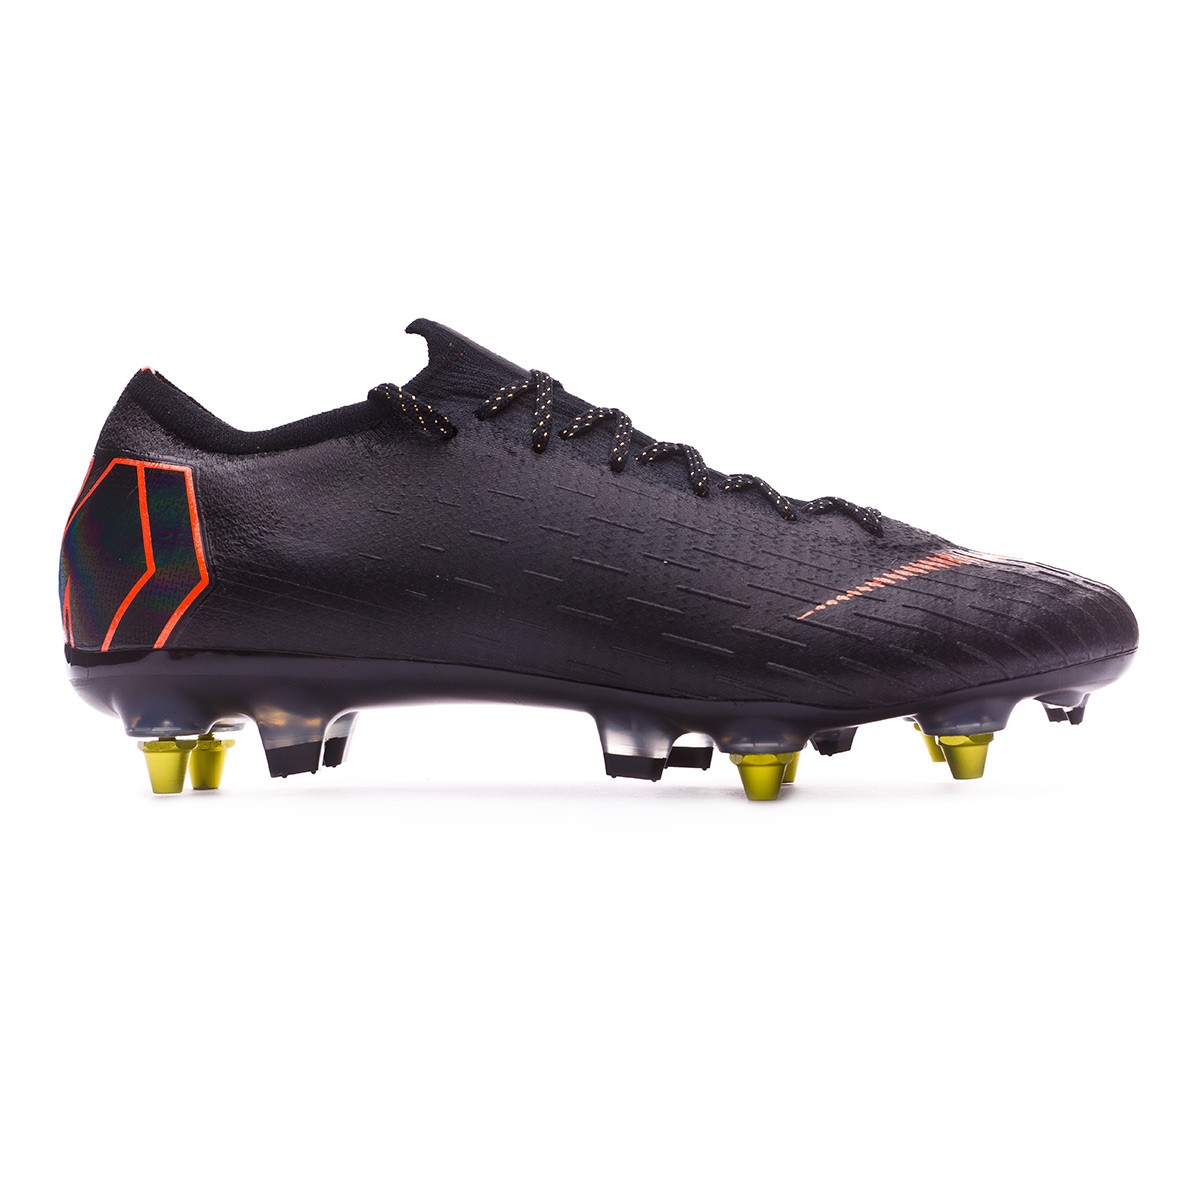 793863abc66 Football Boots Nike Mercurial Vapor XII Elite SG-Pro Anti-Clog Black-Total  orange-White - Football store Fútbol Emotion